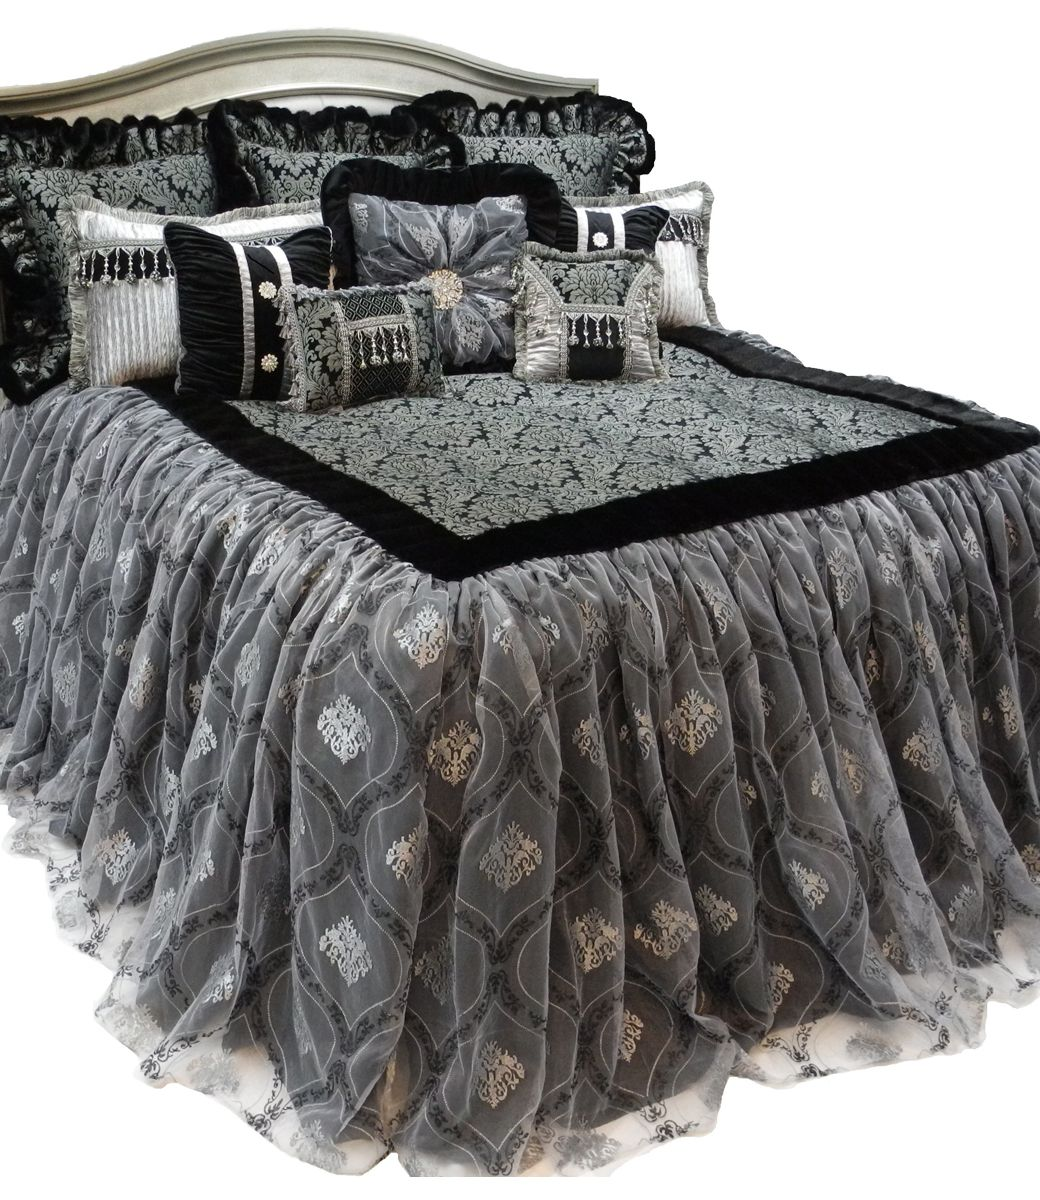 This Beautiful Luxury Bedding is a Limited Collection with ONLY 2  AVAILABLE  Damask pattern Chenille. This Beautiful Luxury Bedding is a Limited Collection with ONLY 2